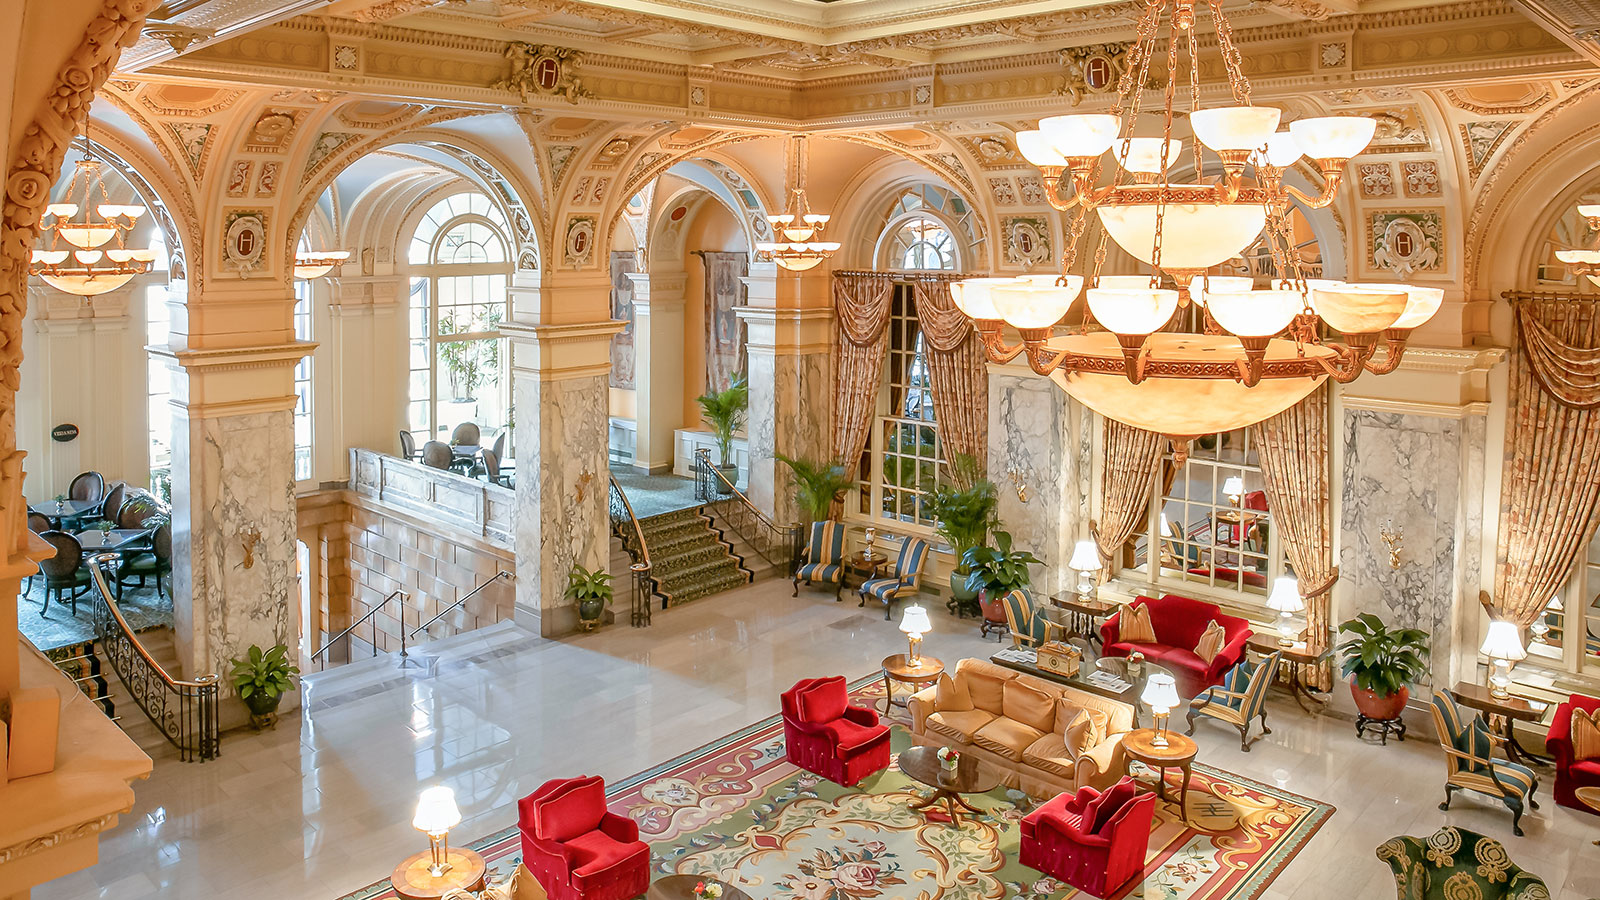 Discover The Hermitage Hotel's wonderfully preserved historic façade.